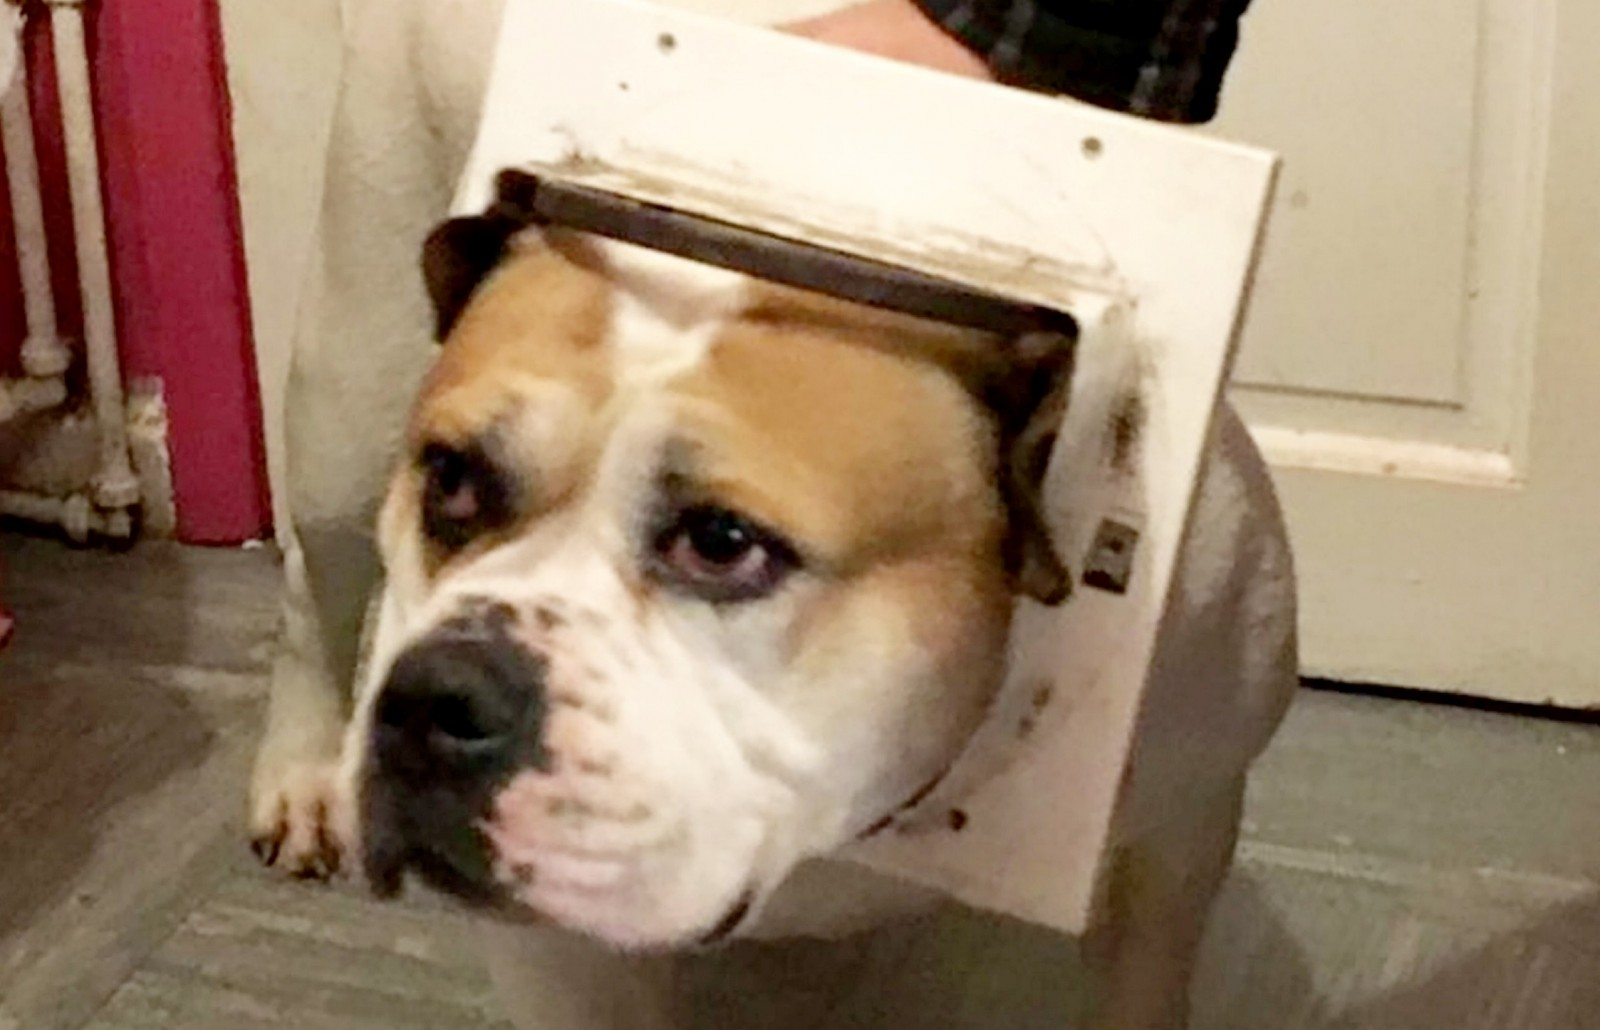 Hilarious moment a Bulldog had to be rescued from a cat flap!